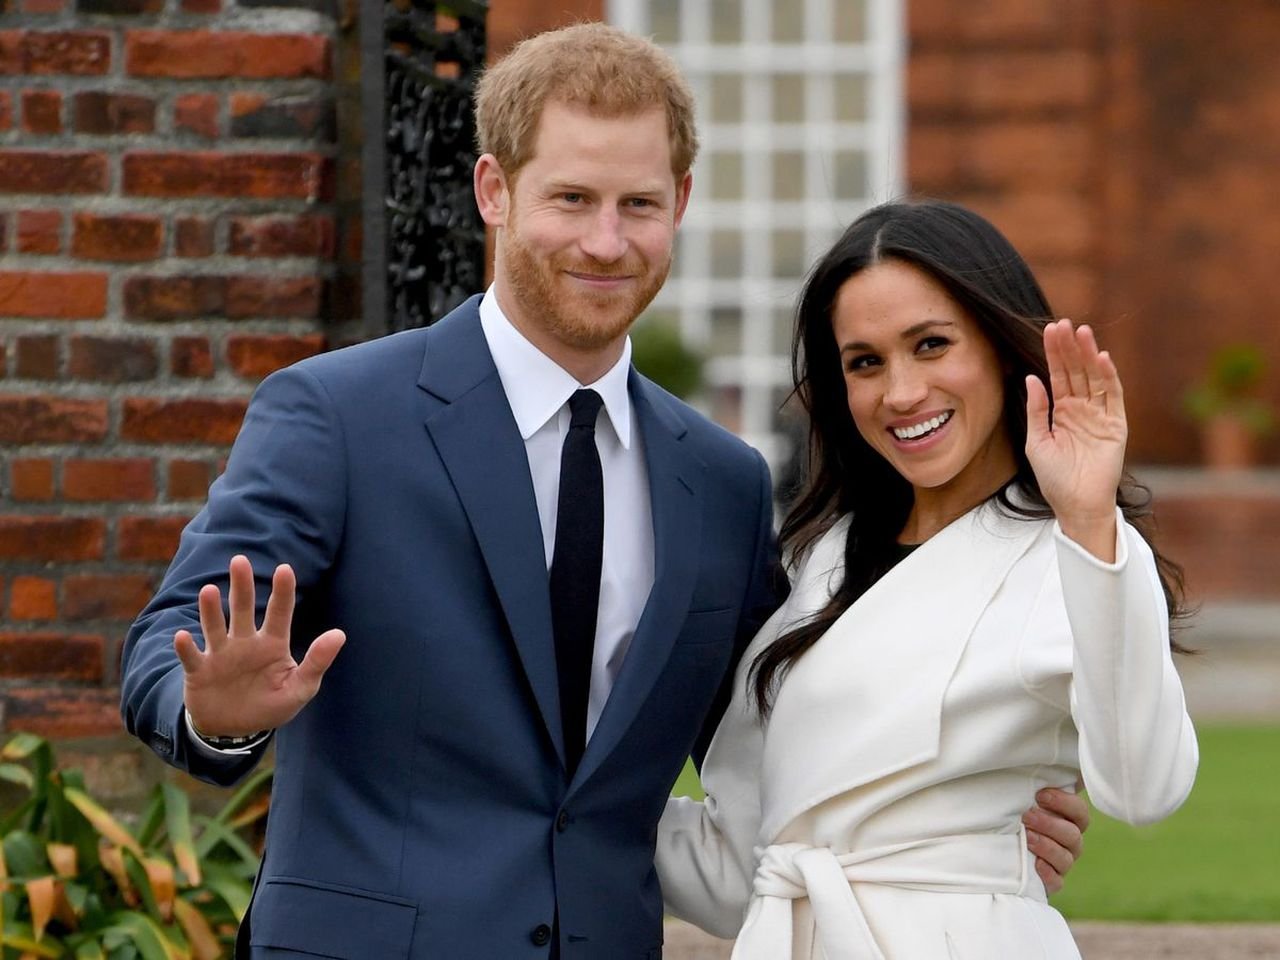 Prince Harry and Meghan Markle fire UK staff, close Buckingham Palace office, Image via Mirror